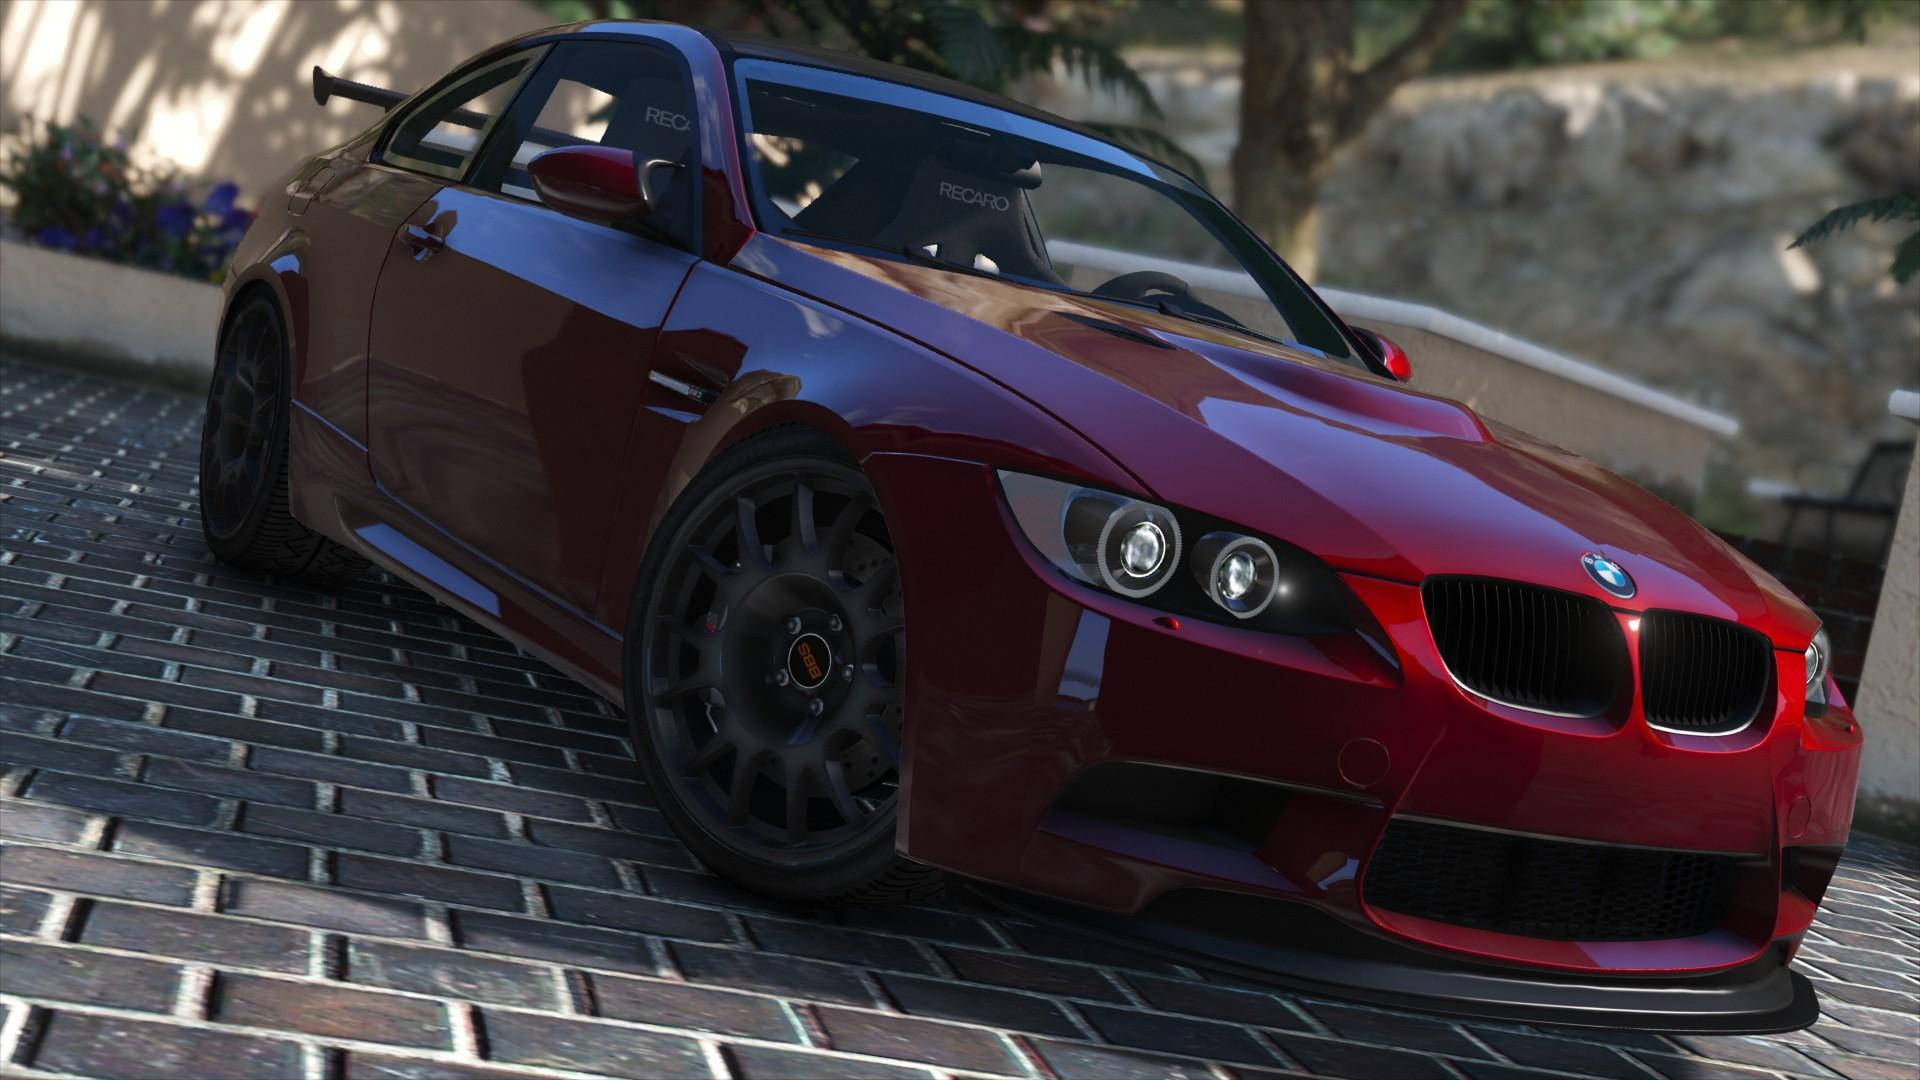 bmw e92 m3 gts tuning gta5. Black Bedroom Furniture Sets. Home Design Ideas